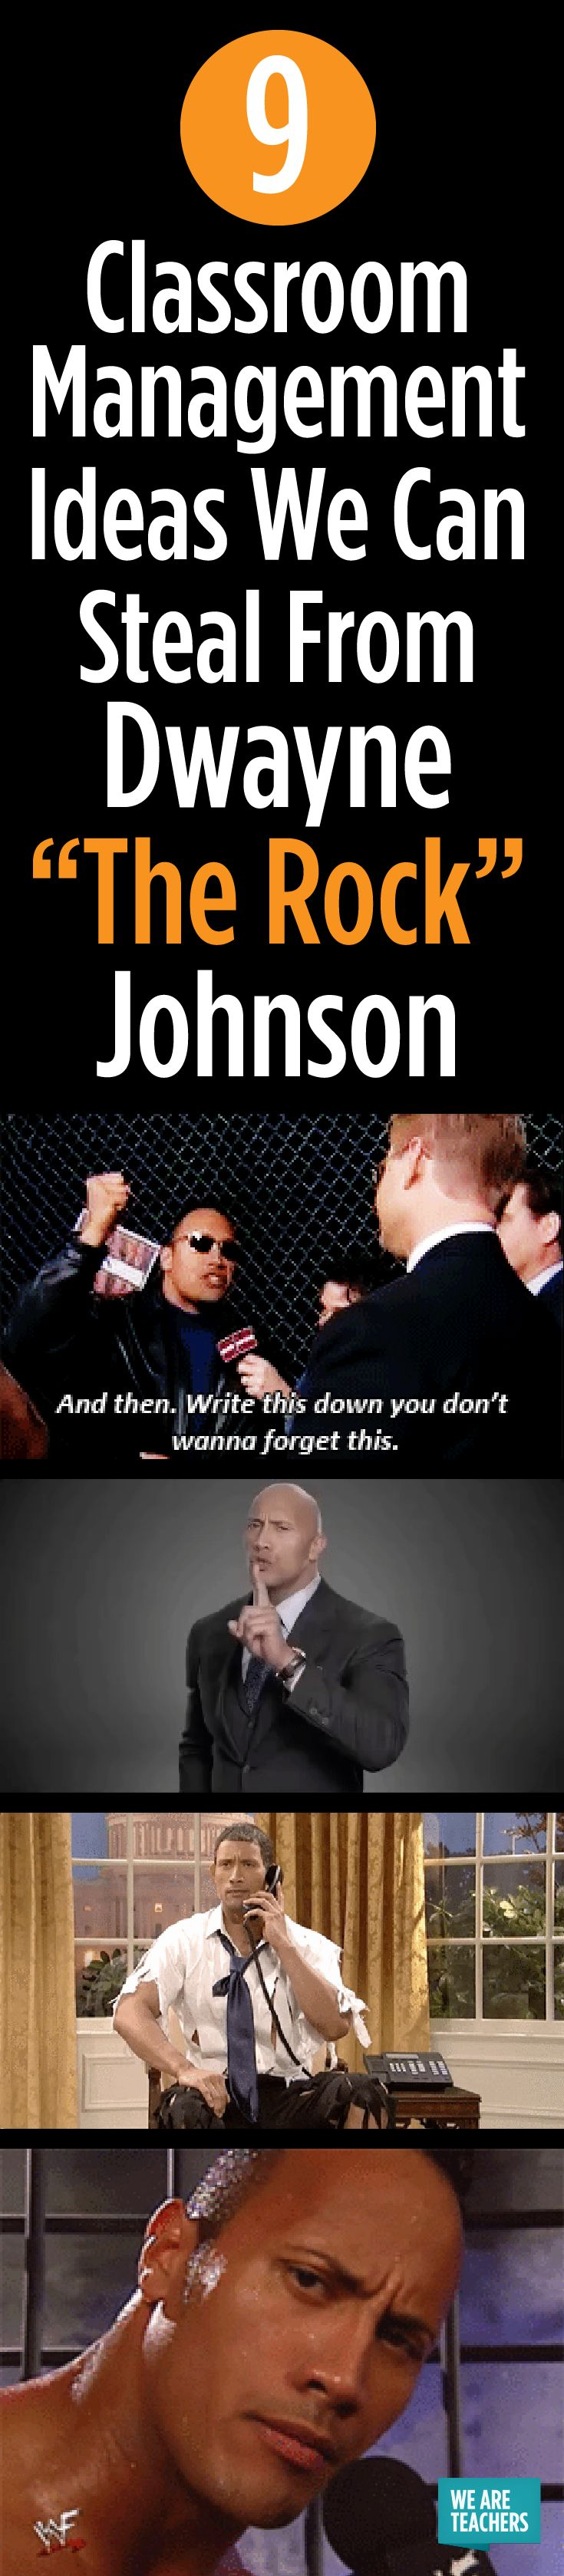 "Classroom Management Ideas Inspired By Dwayne ""The Rock"" Johnson"